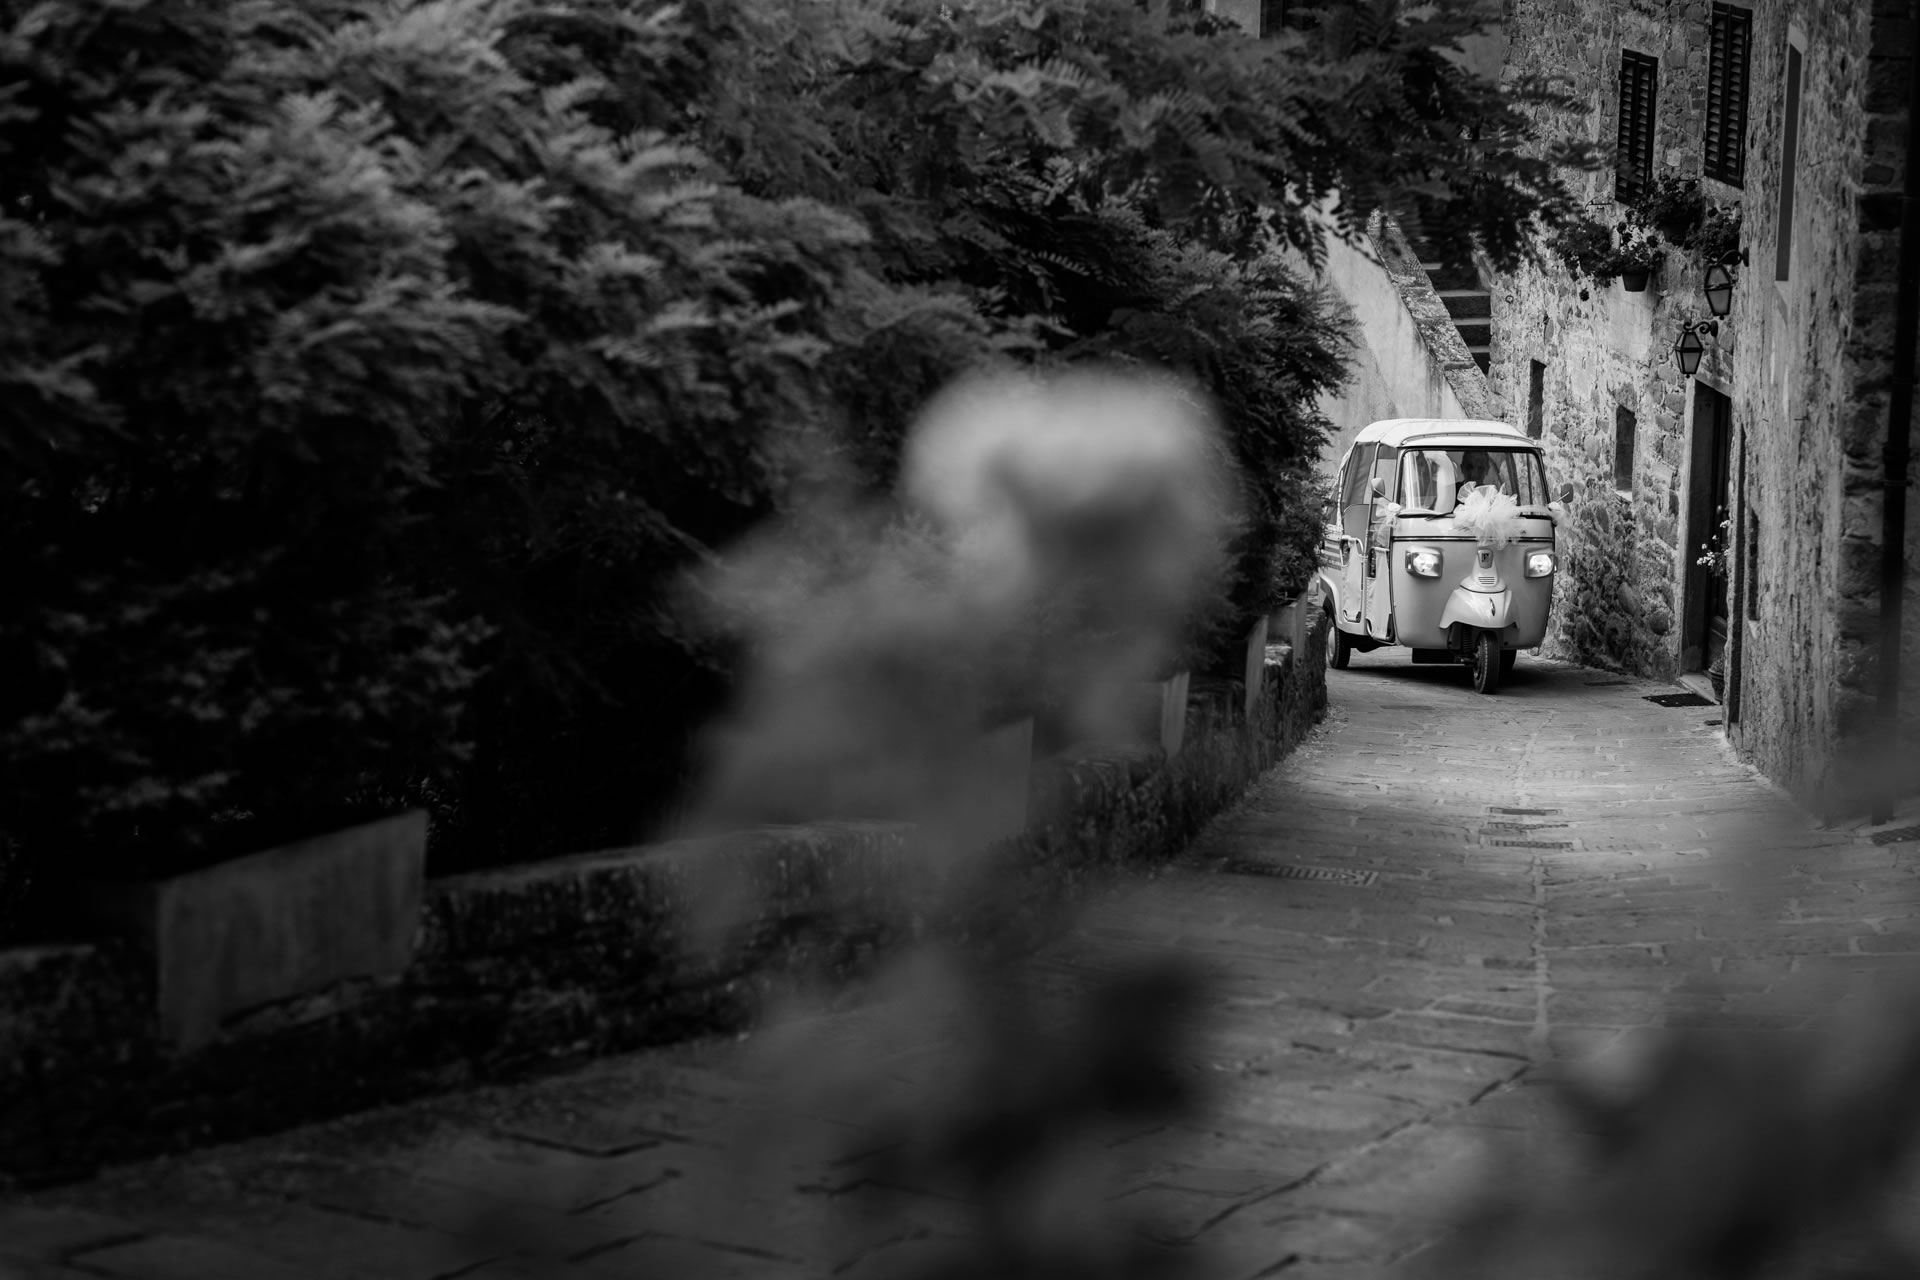 Car - 15 :: Amazing wedding day at Il Borro :: Luxury wedding photography - 14 :: Car - 15